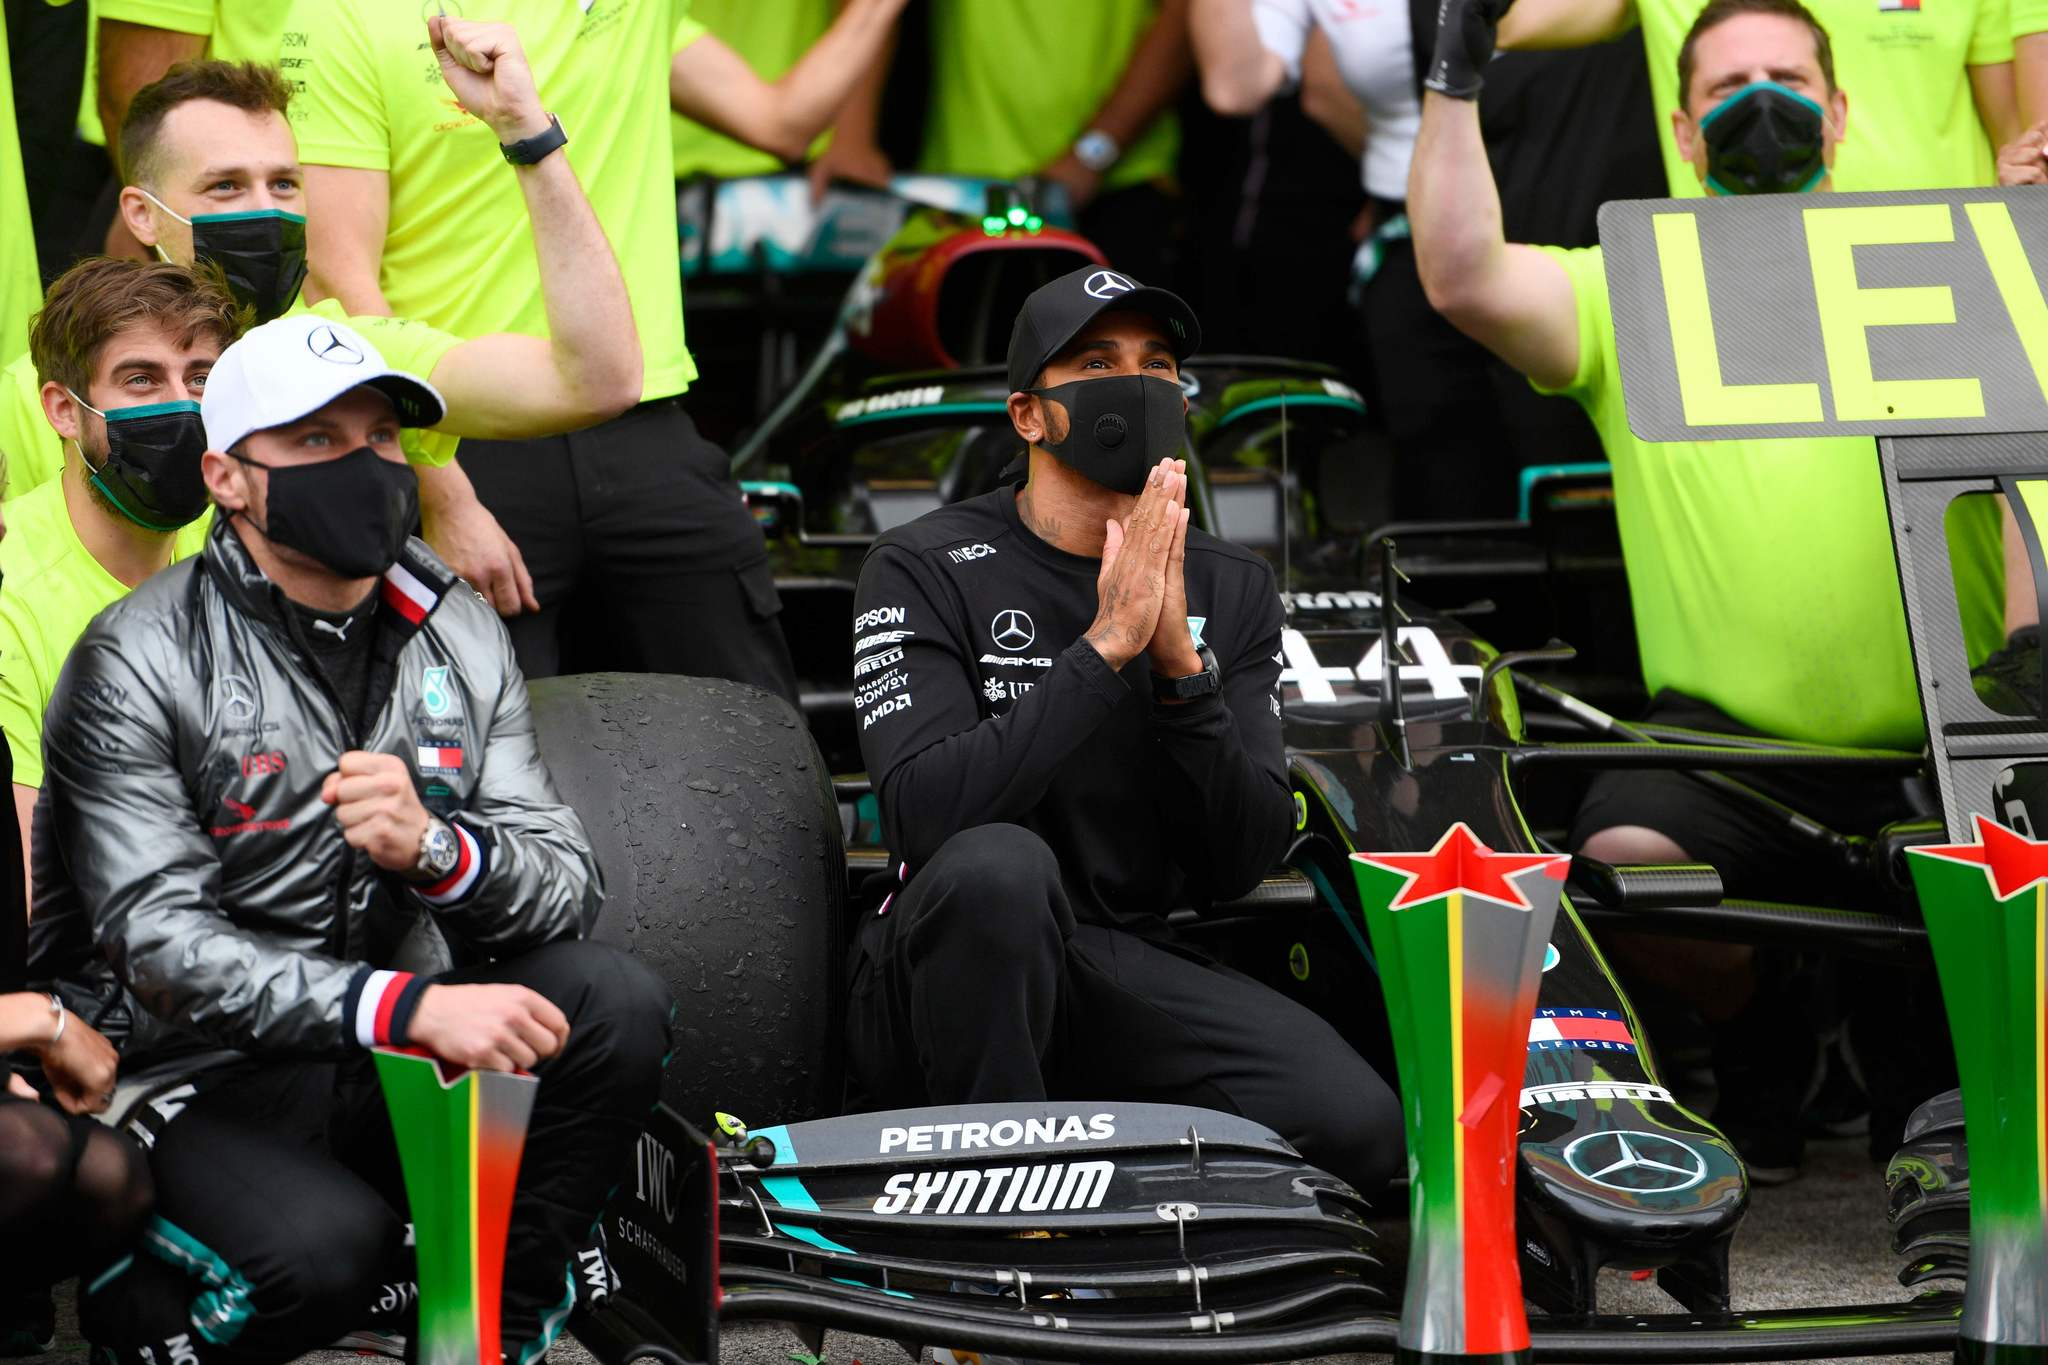 Mercedes British driver Lewis lt;HIT gt;Hamilton lt;/HIT gt; (C) gestures as he poses along with his team after winning the Portuguese Formula One Grand Prix at the Autodromo Internacional do Algarve on October 25, 2020 in Portimao. (Photo by RUDY CAREZZEVOLI / POOL / AFP)